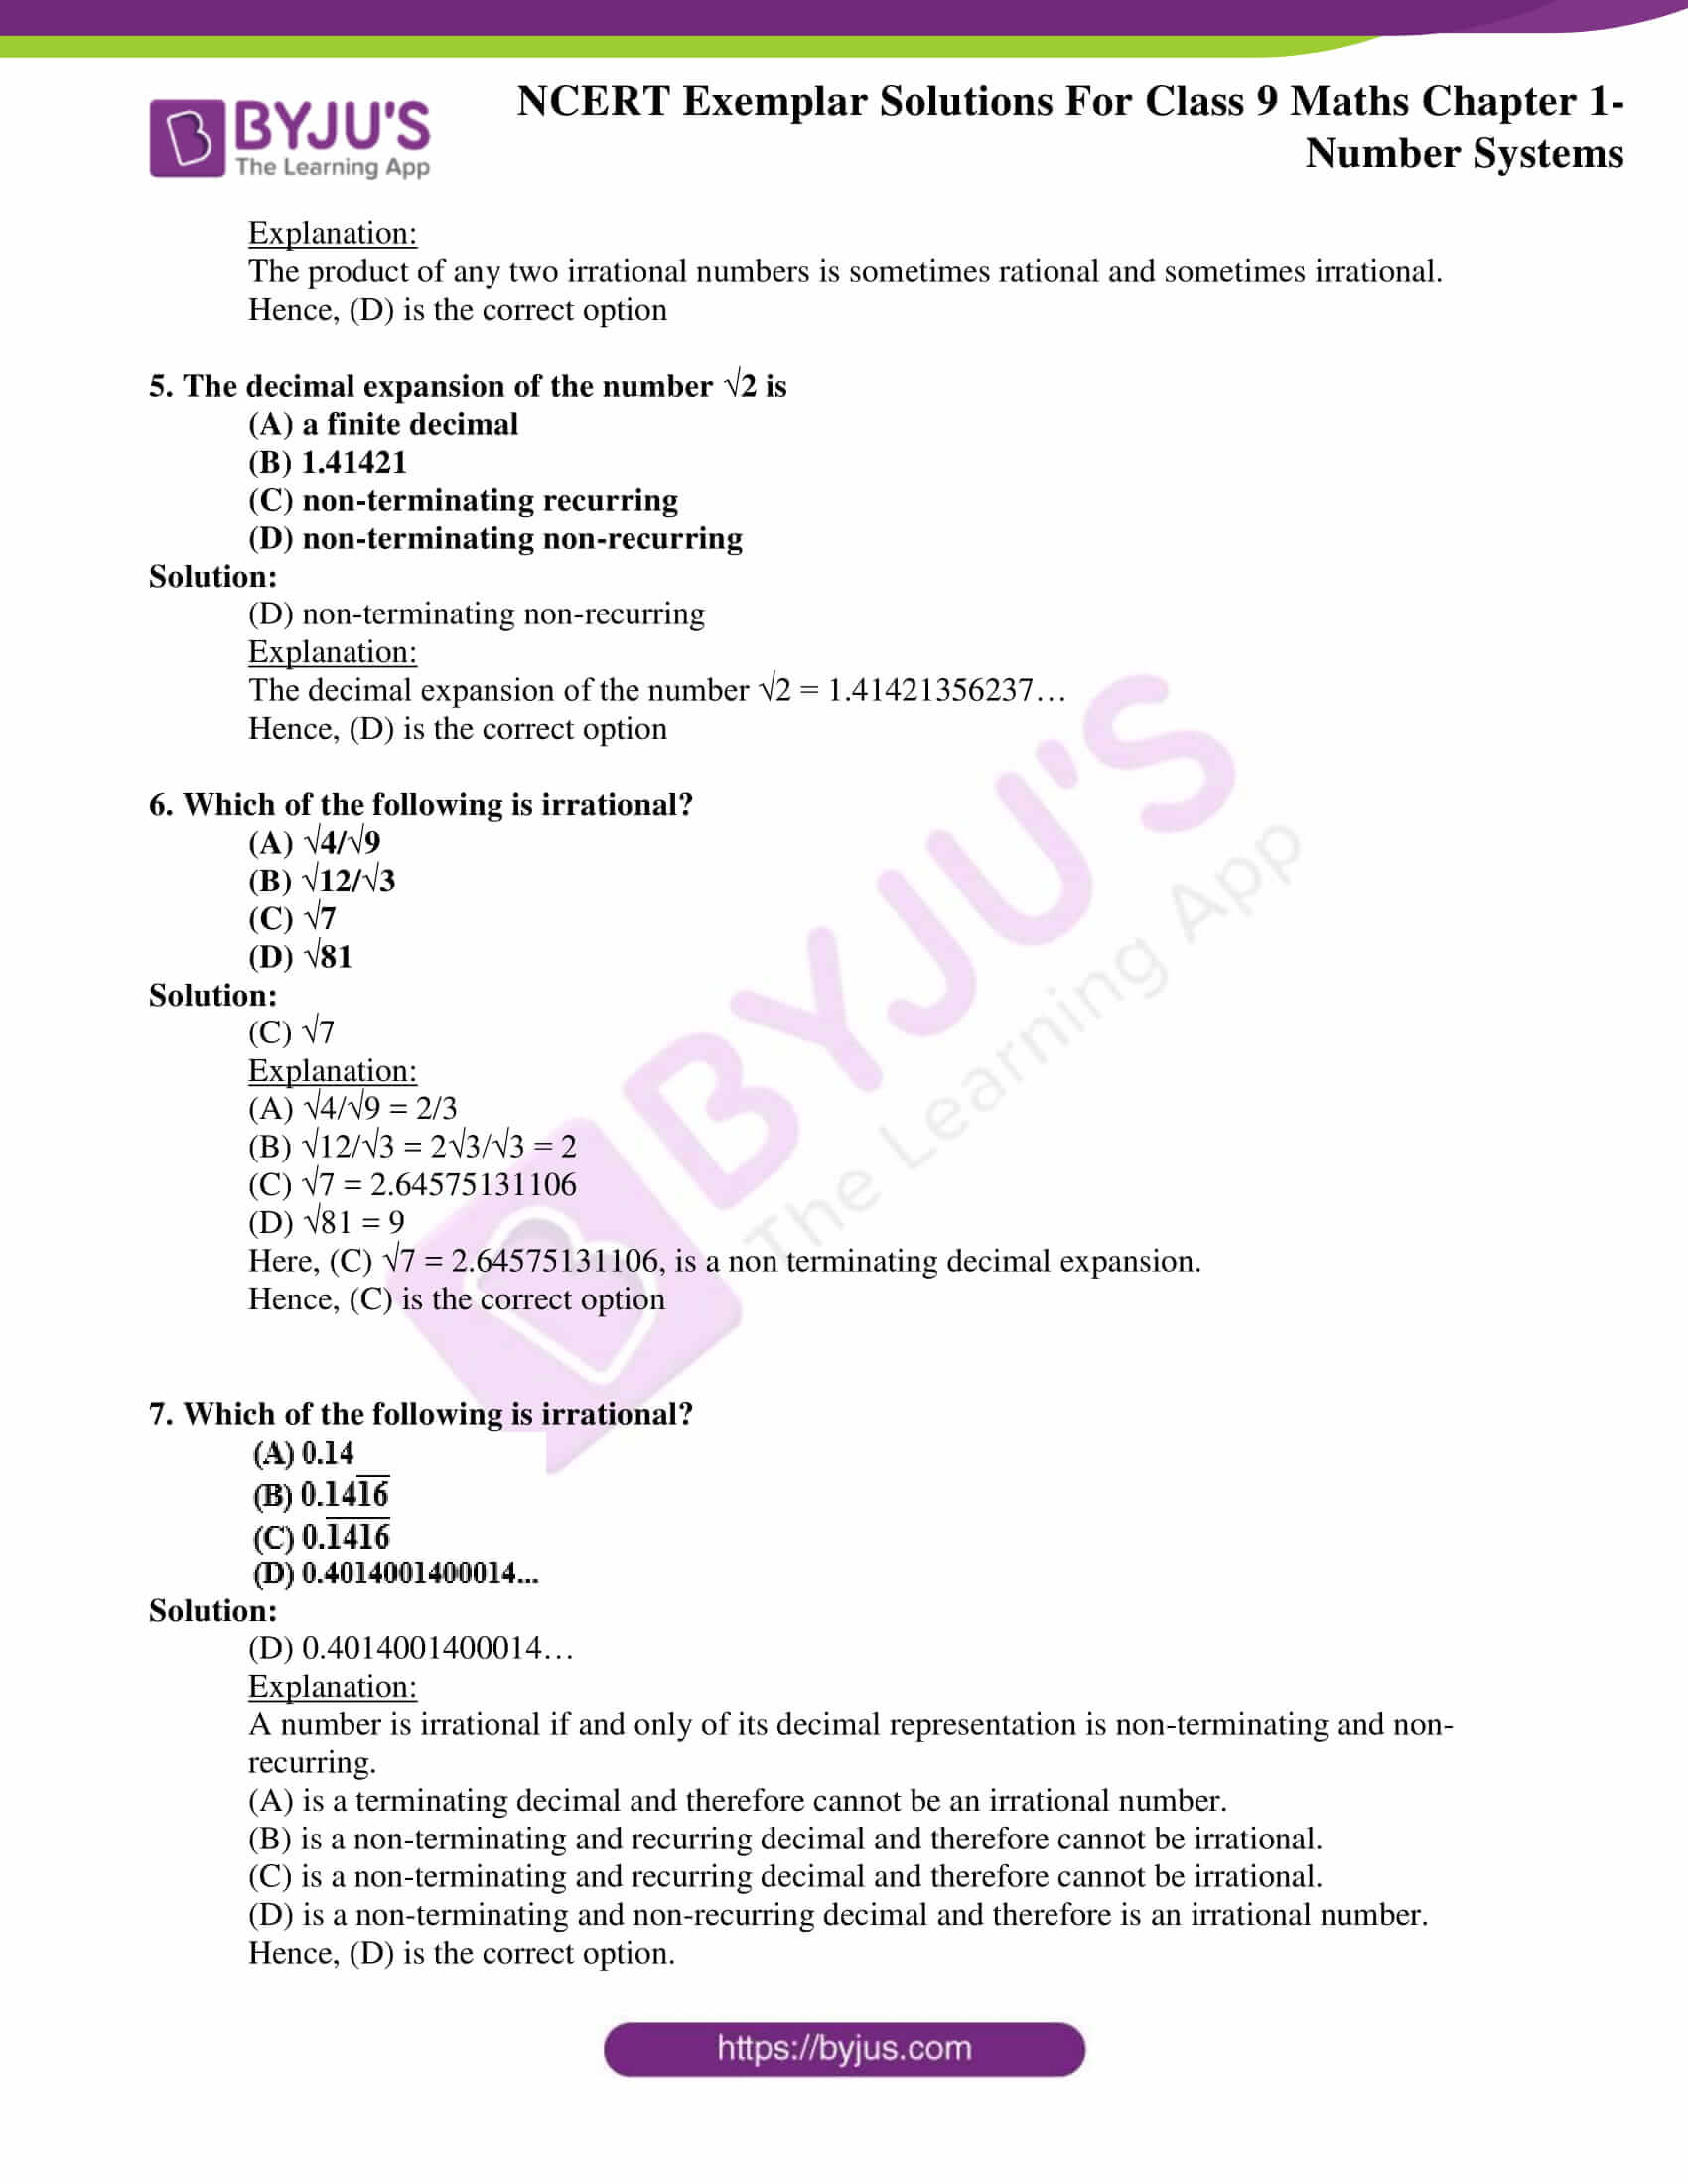 NCERT Exemplar Solutions for Class 9 Maths Chapter 1 02